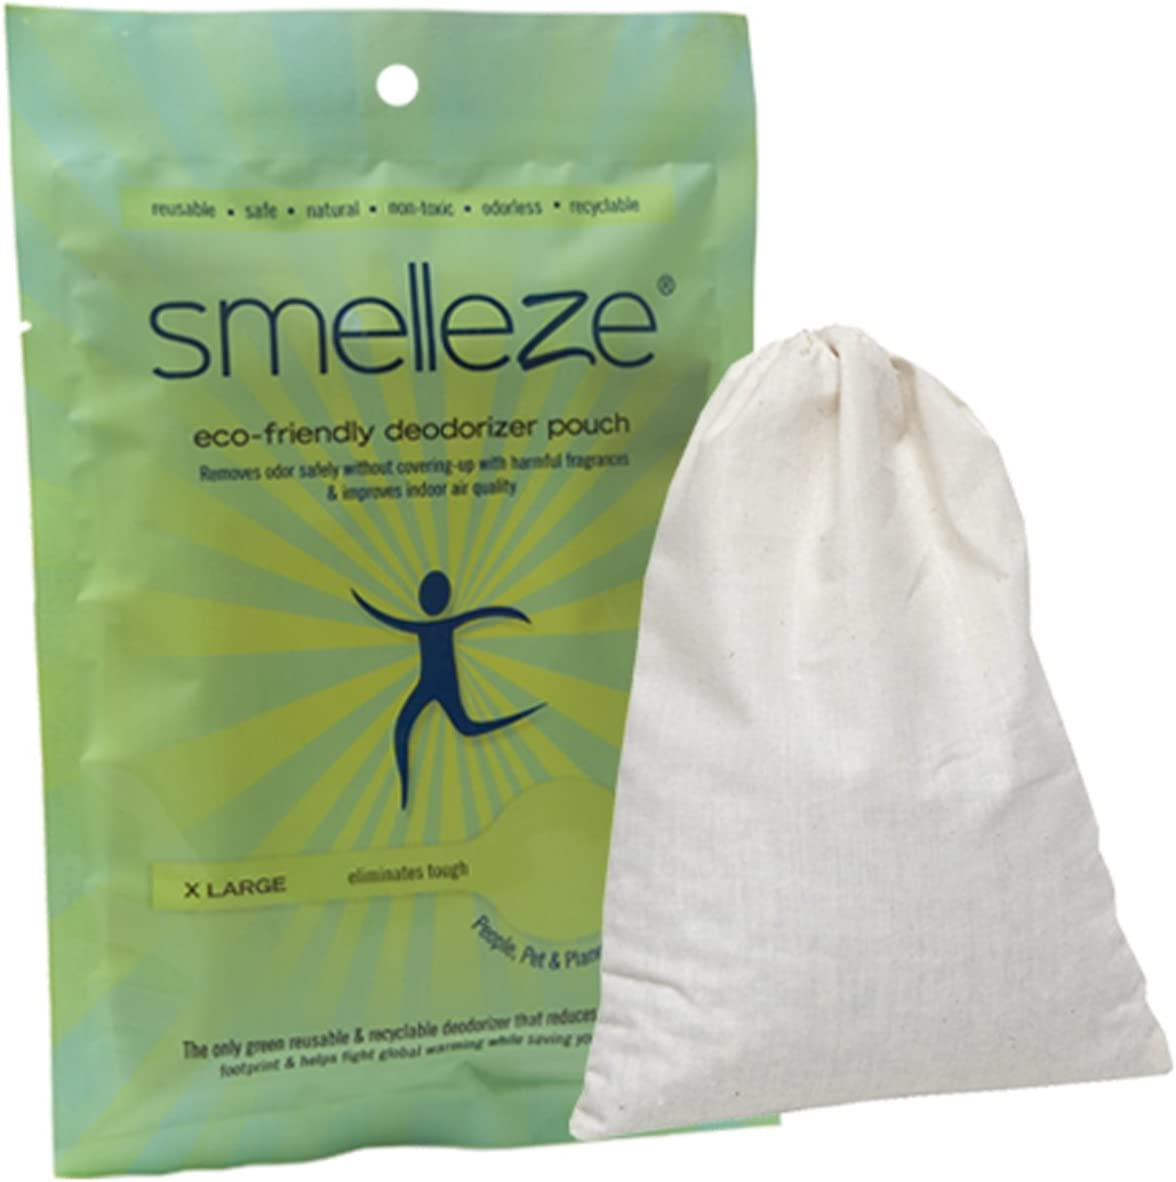 SMELLEZE Choice Reusable Toilet Odor Removal Rids Pouch: Res New life Deodorizer